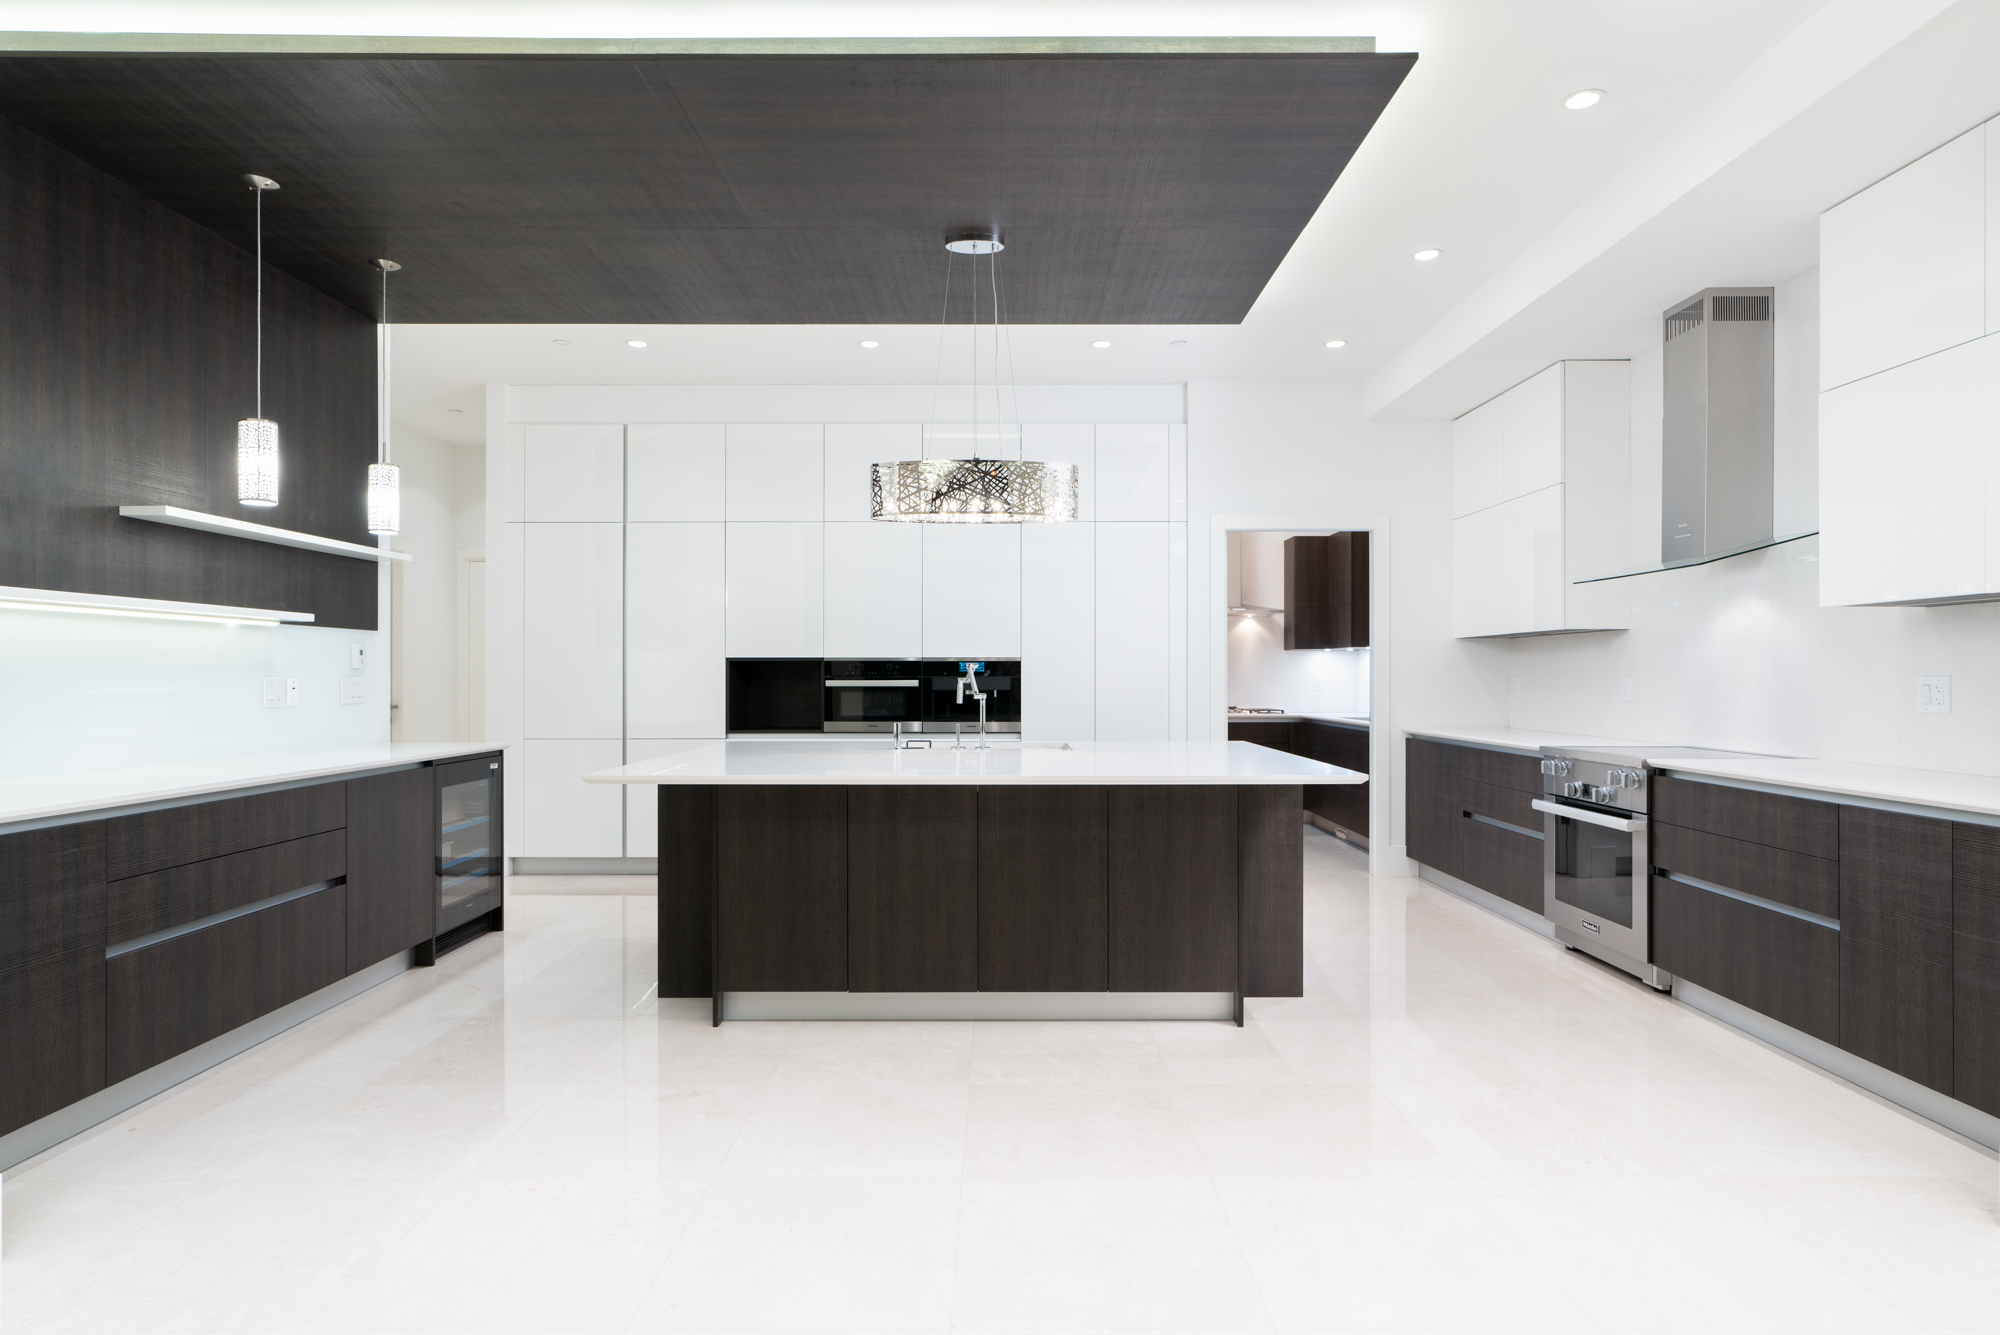 west vancouver kitchen photography